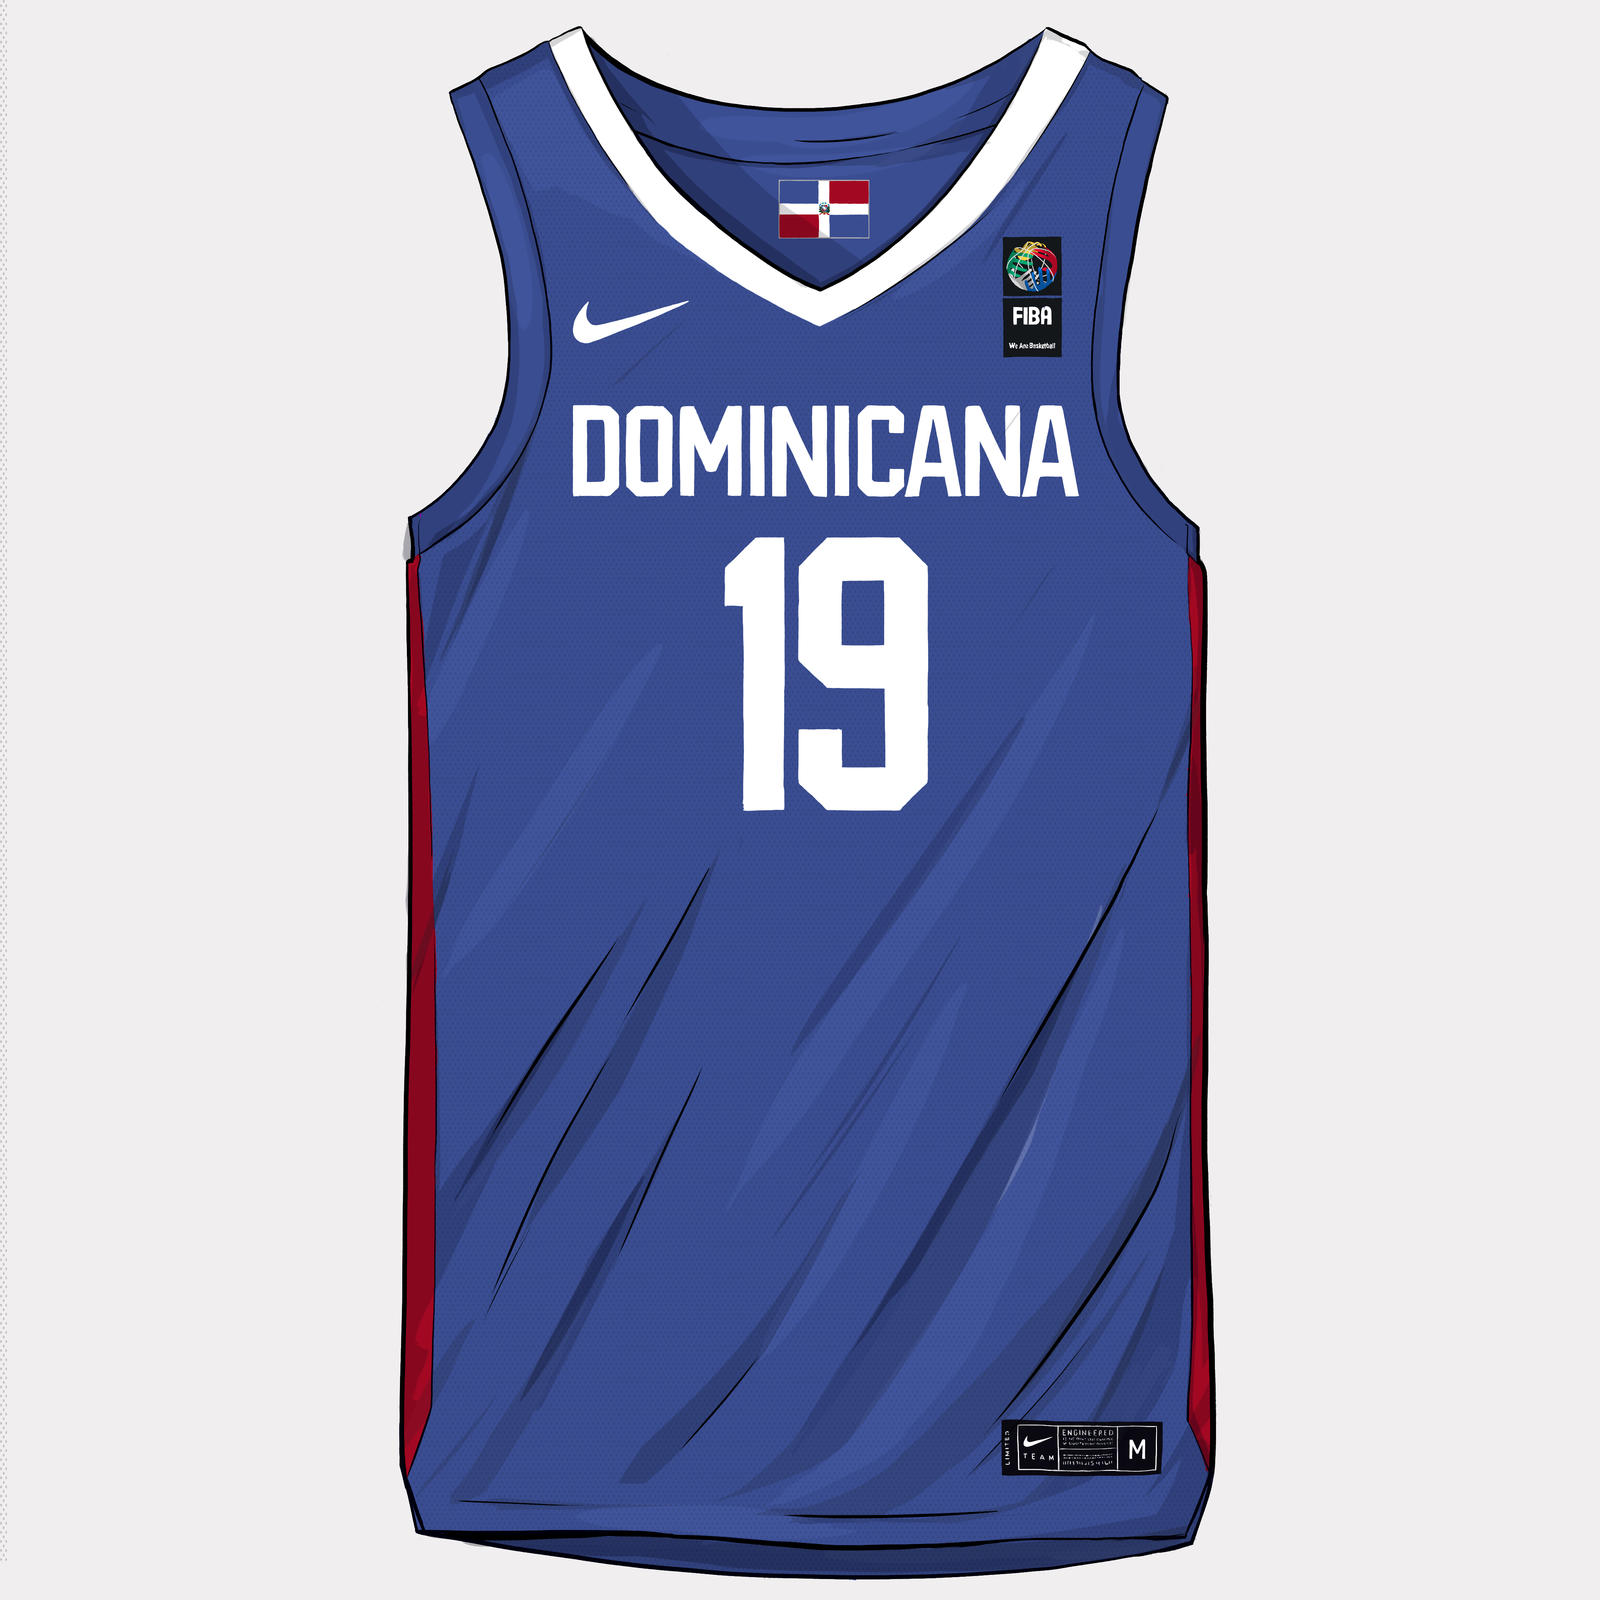 nike-news-dominican-republic-national-team-kit-2019 ...